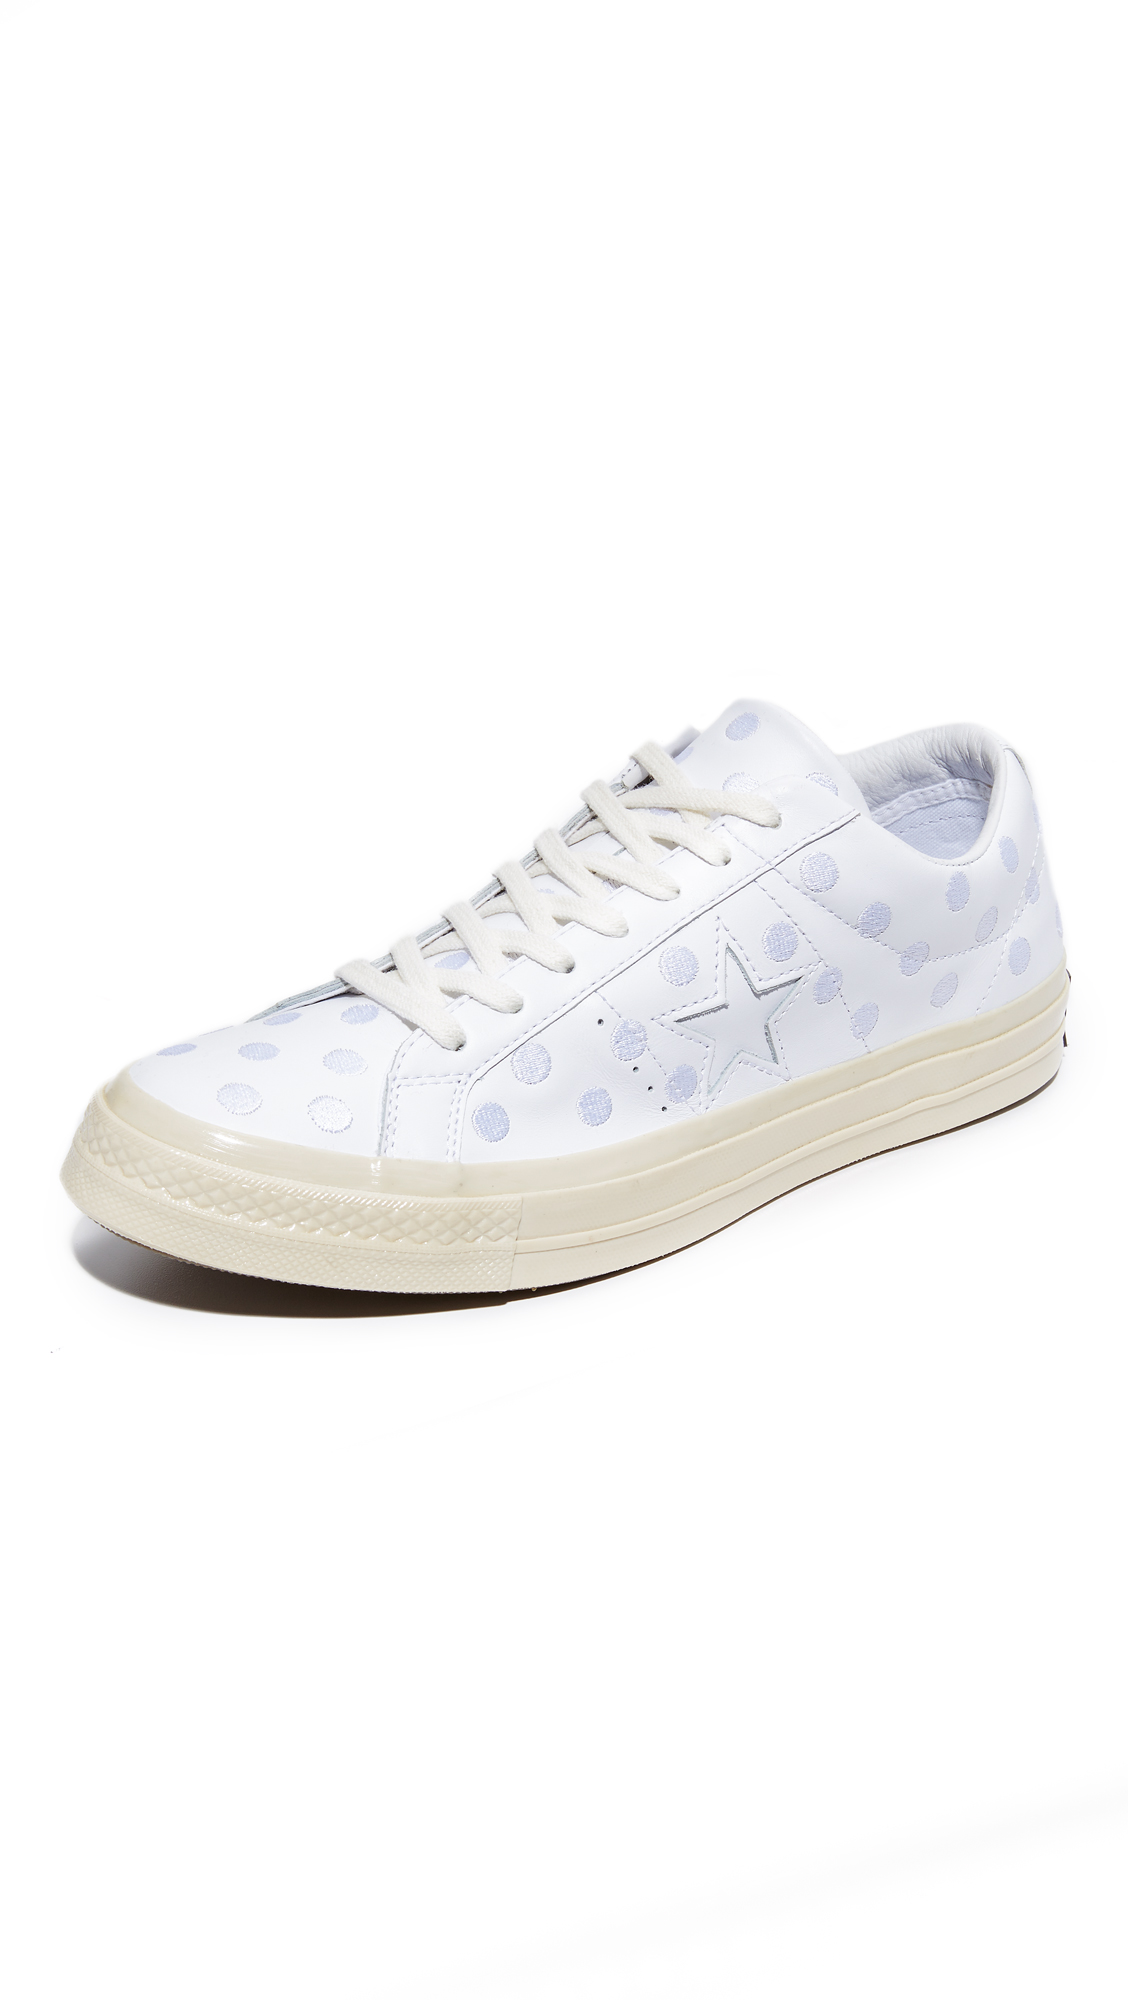 85dcf1459bac Converse One Star 74 Leather Dot Sneaker In White White